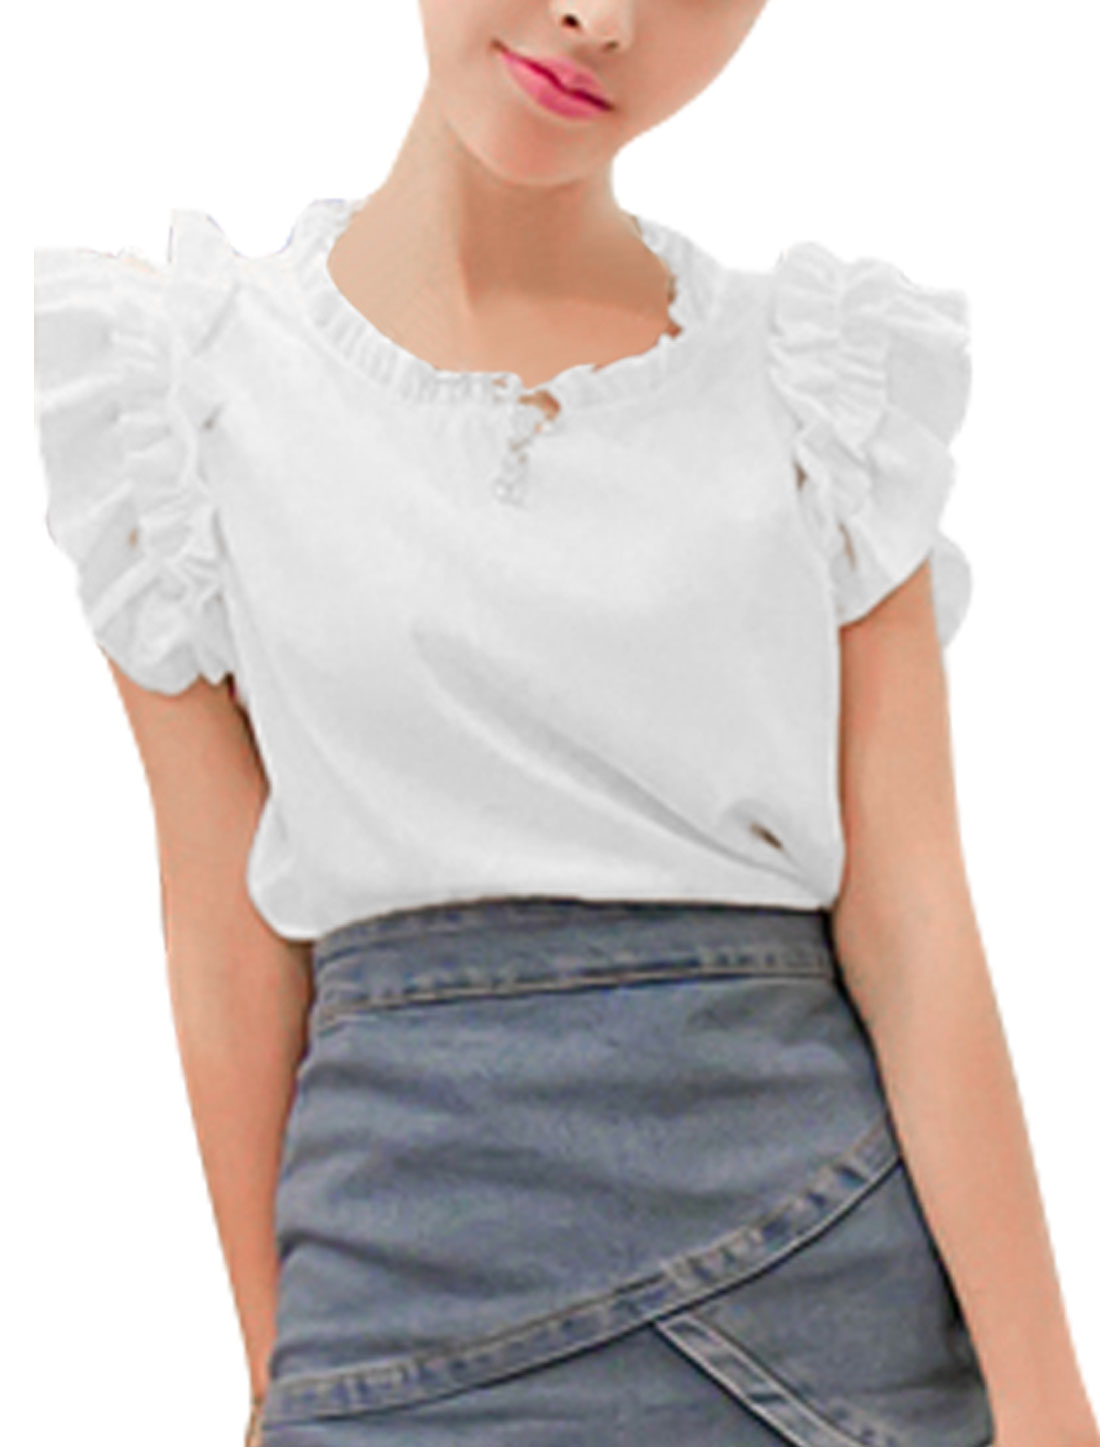 Women Chiffon Sleeveless Concealed Zippers Back Chic Shirt White S